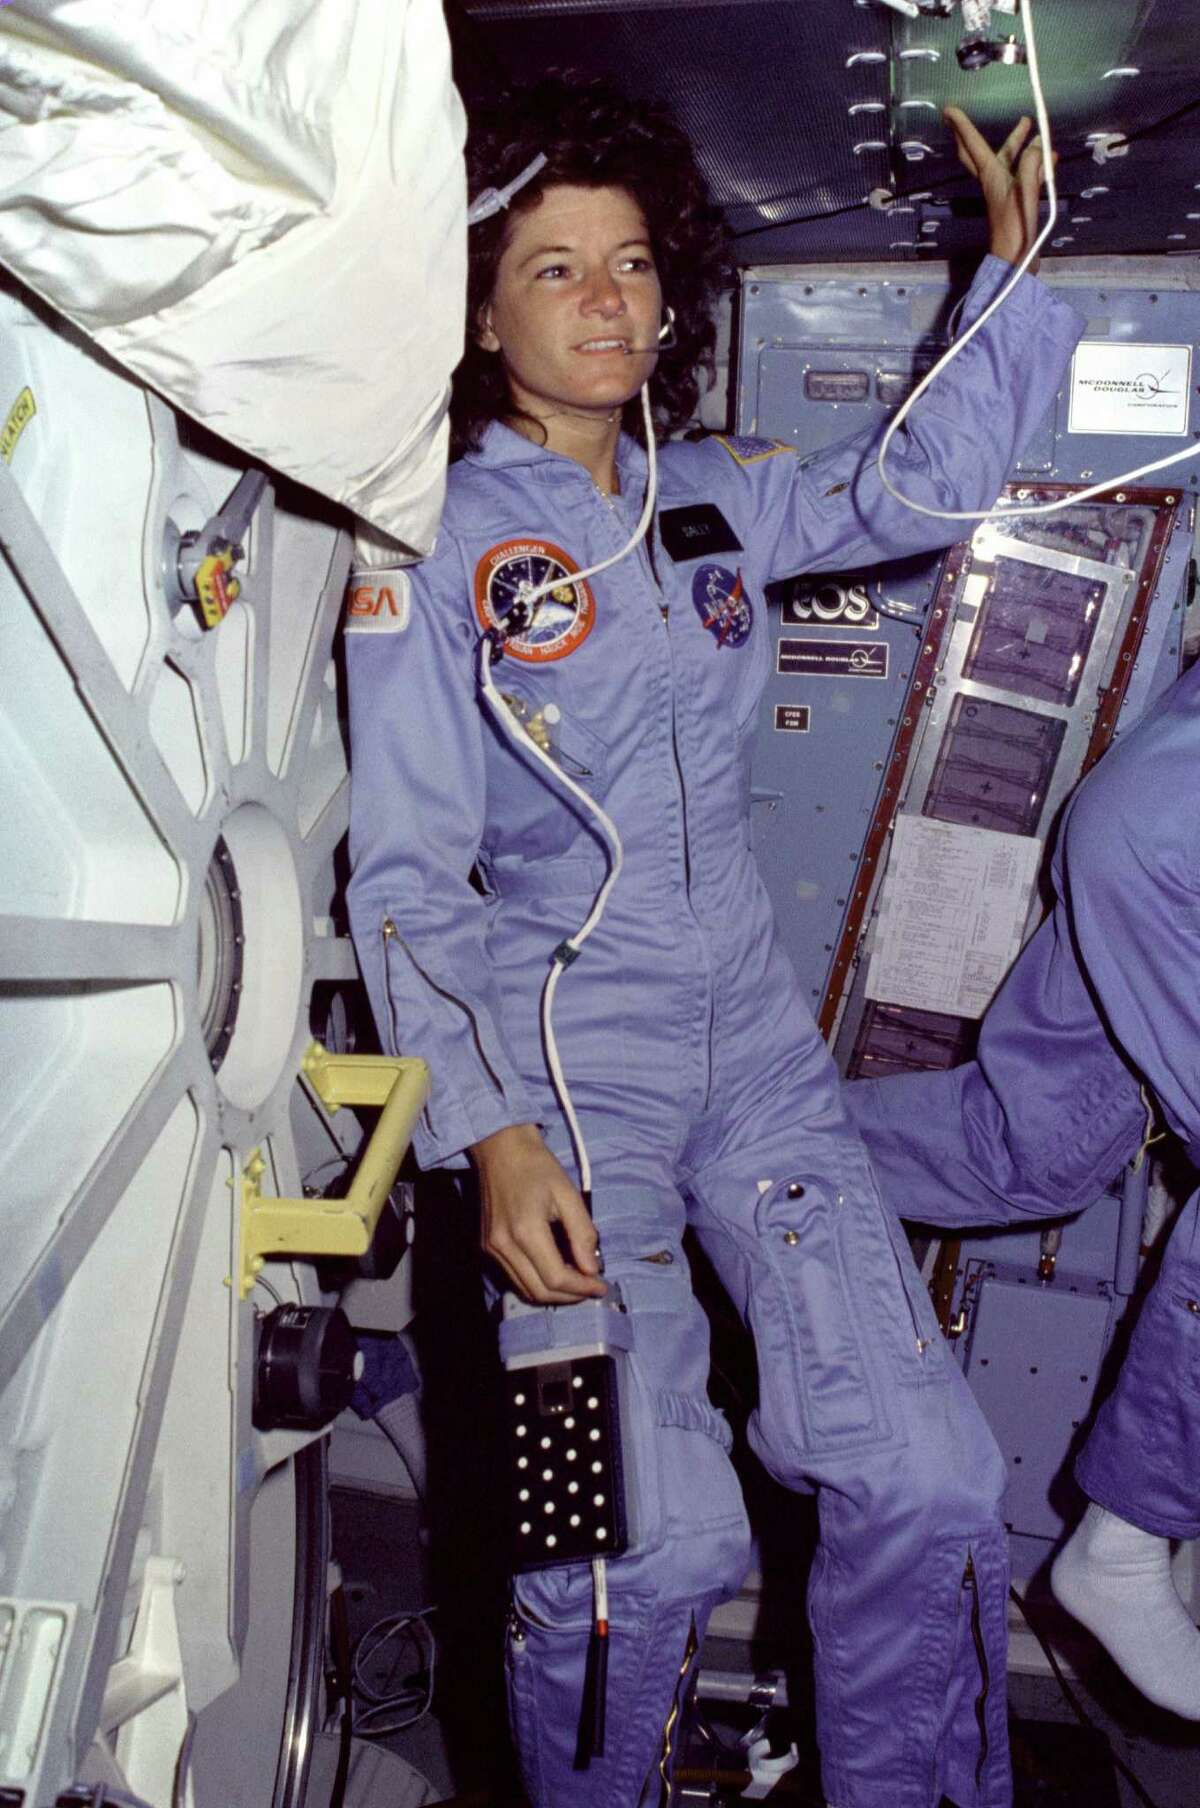 Sally Ride, 1943-2012 Astronaut and first American woman in space